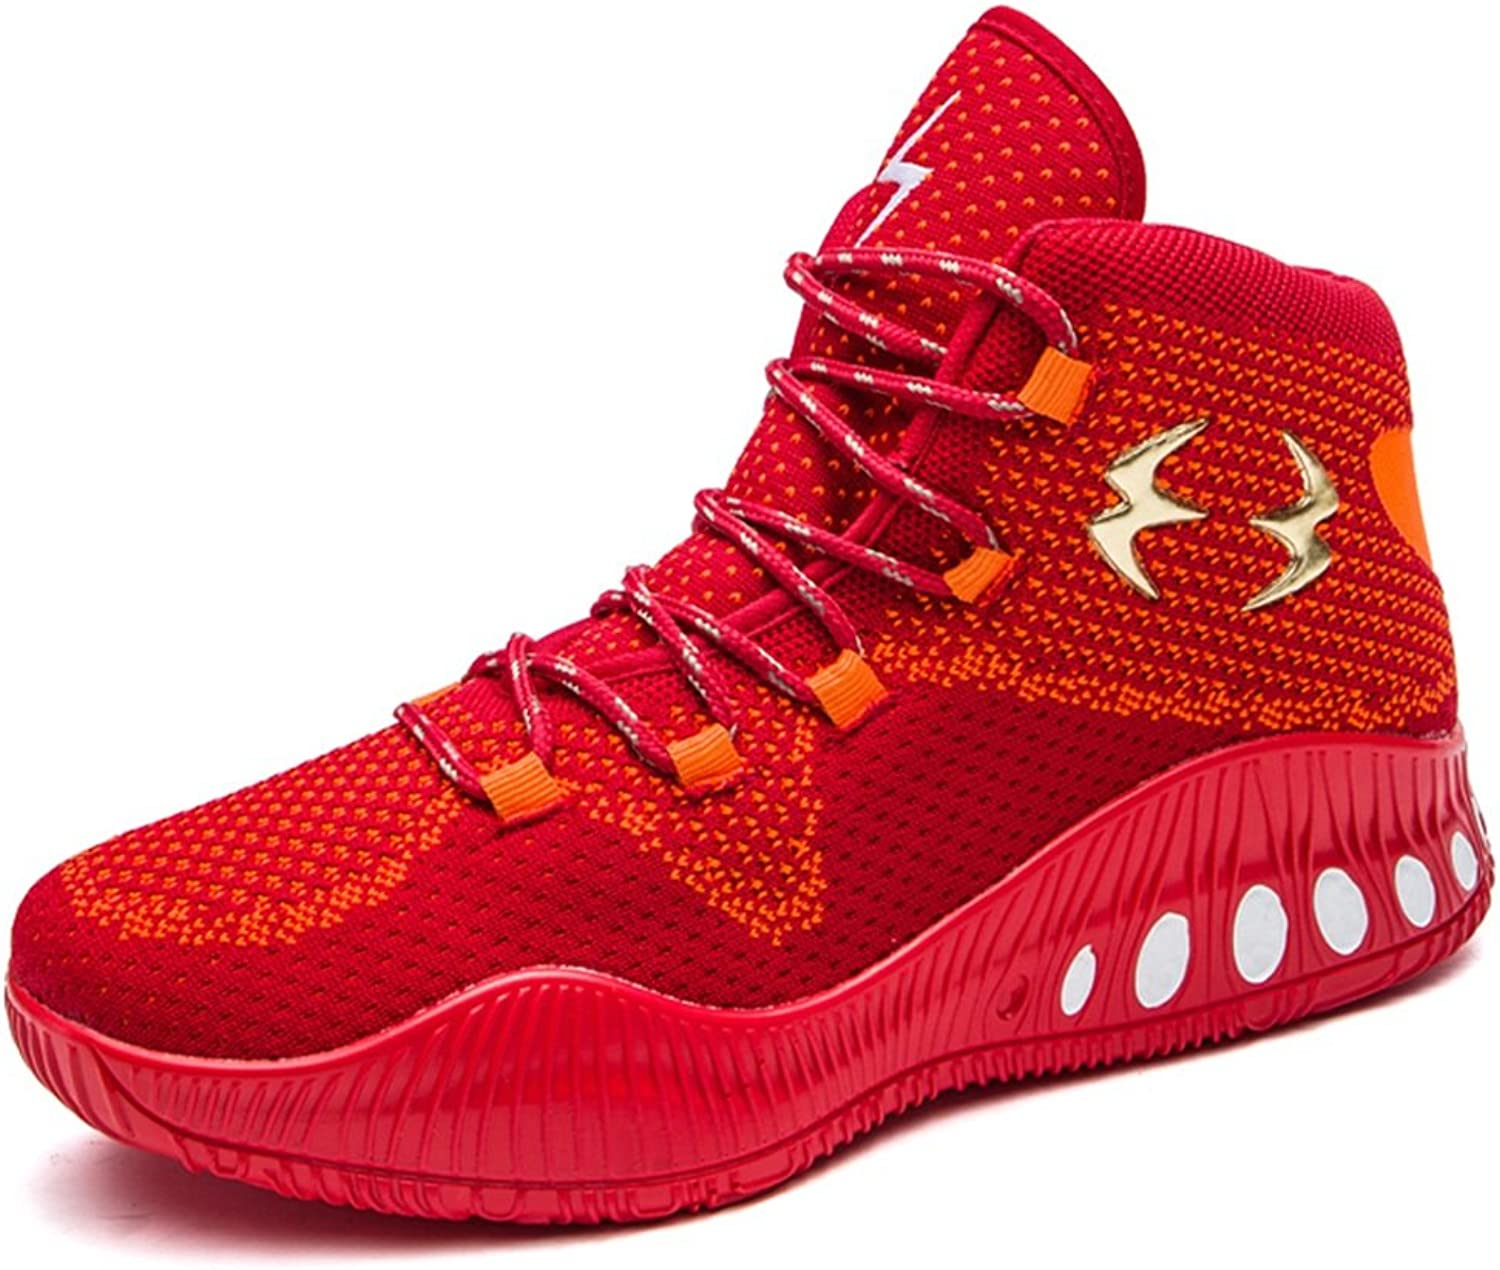 DANDANJIE Trainers Men's Basketball shoes Lace up Running shoes Cushioning Breathable Fabric Mesh Flat shoes